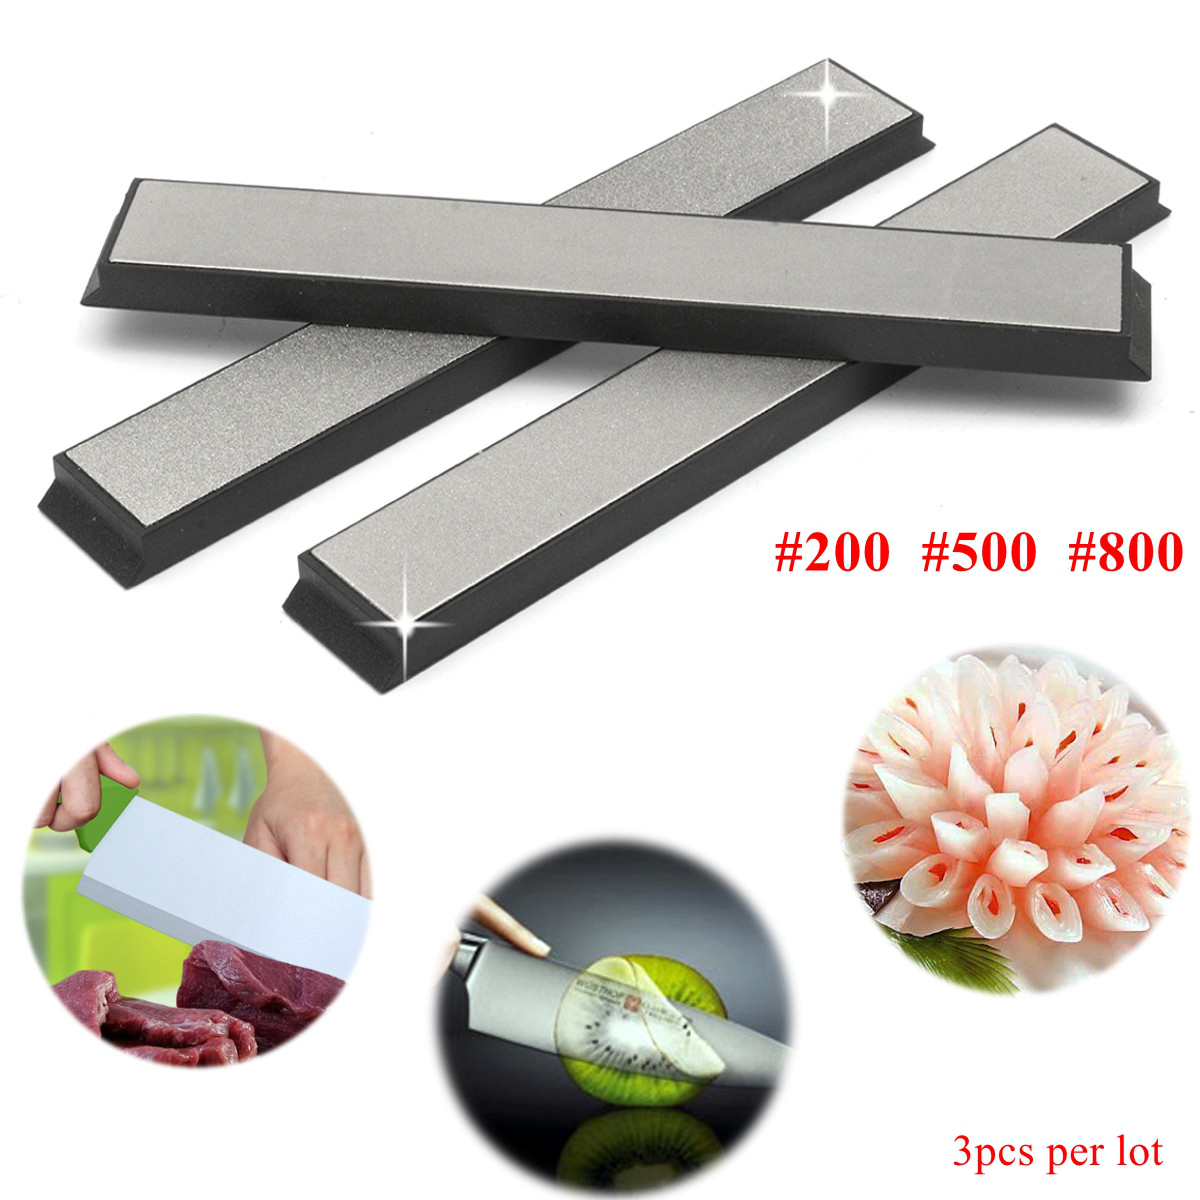 3pcs 200/500/800 Grit Knife Sharpener Knife Sharpening Stone Edge Diamond Whetstone with Base